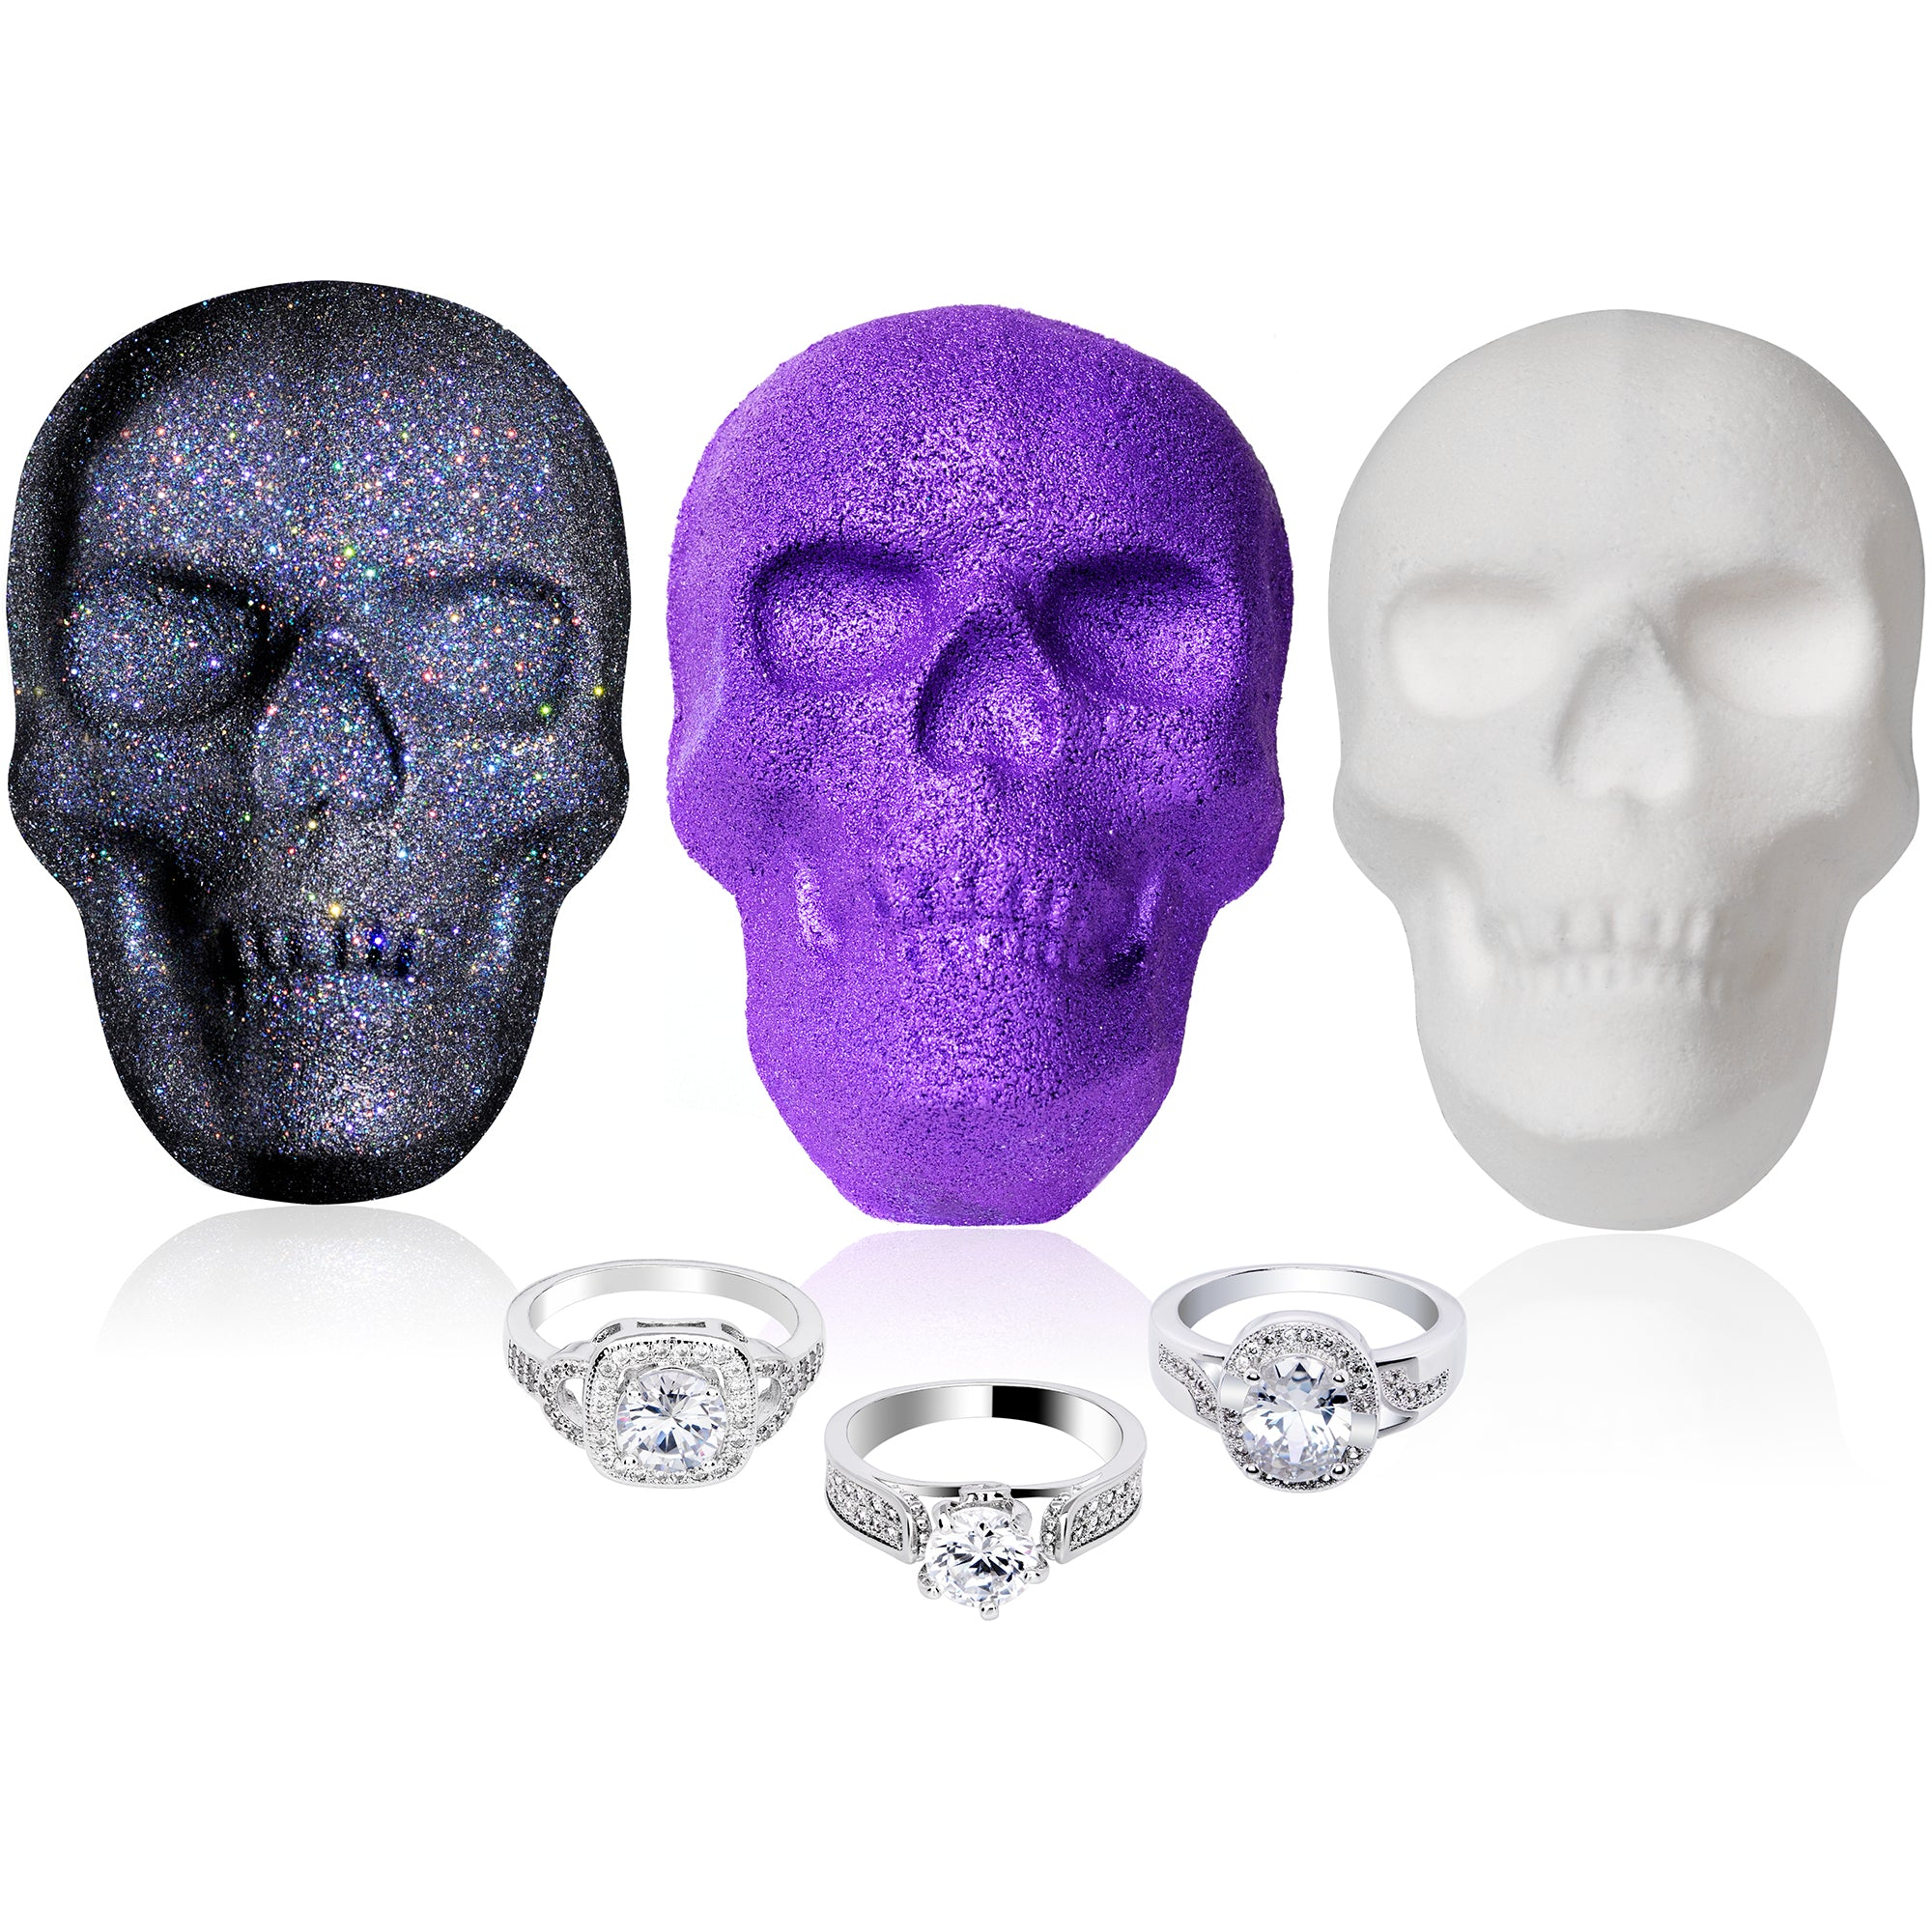 Halloween Drop Dead Gorgeous Skull Bath Bomb 3 Pack Gift Set